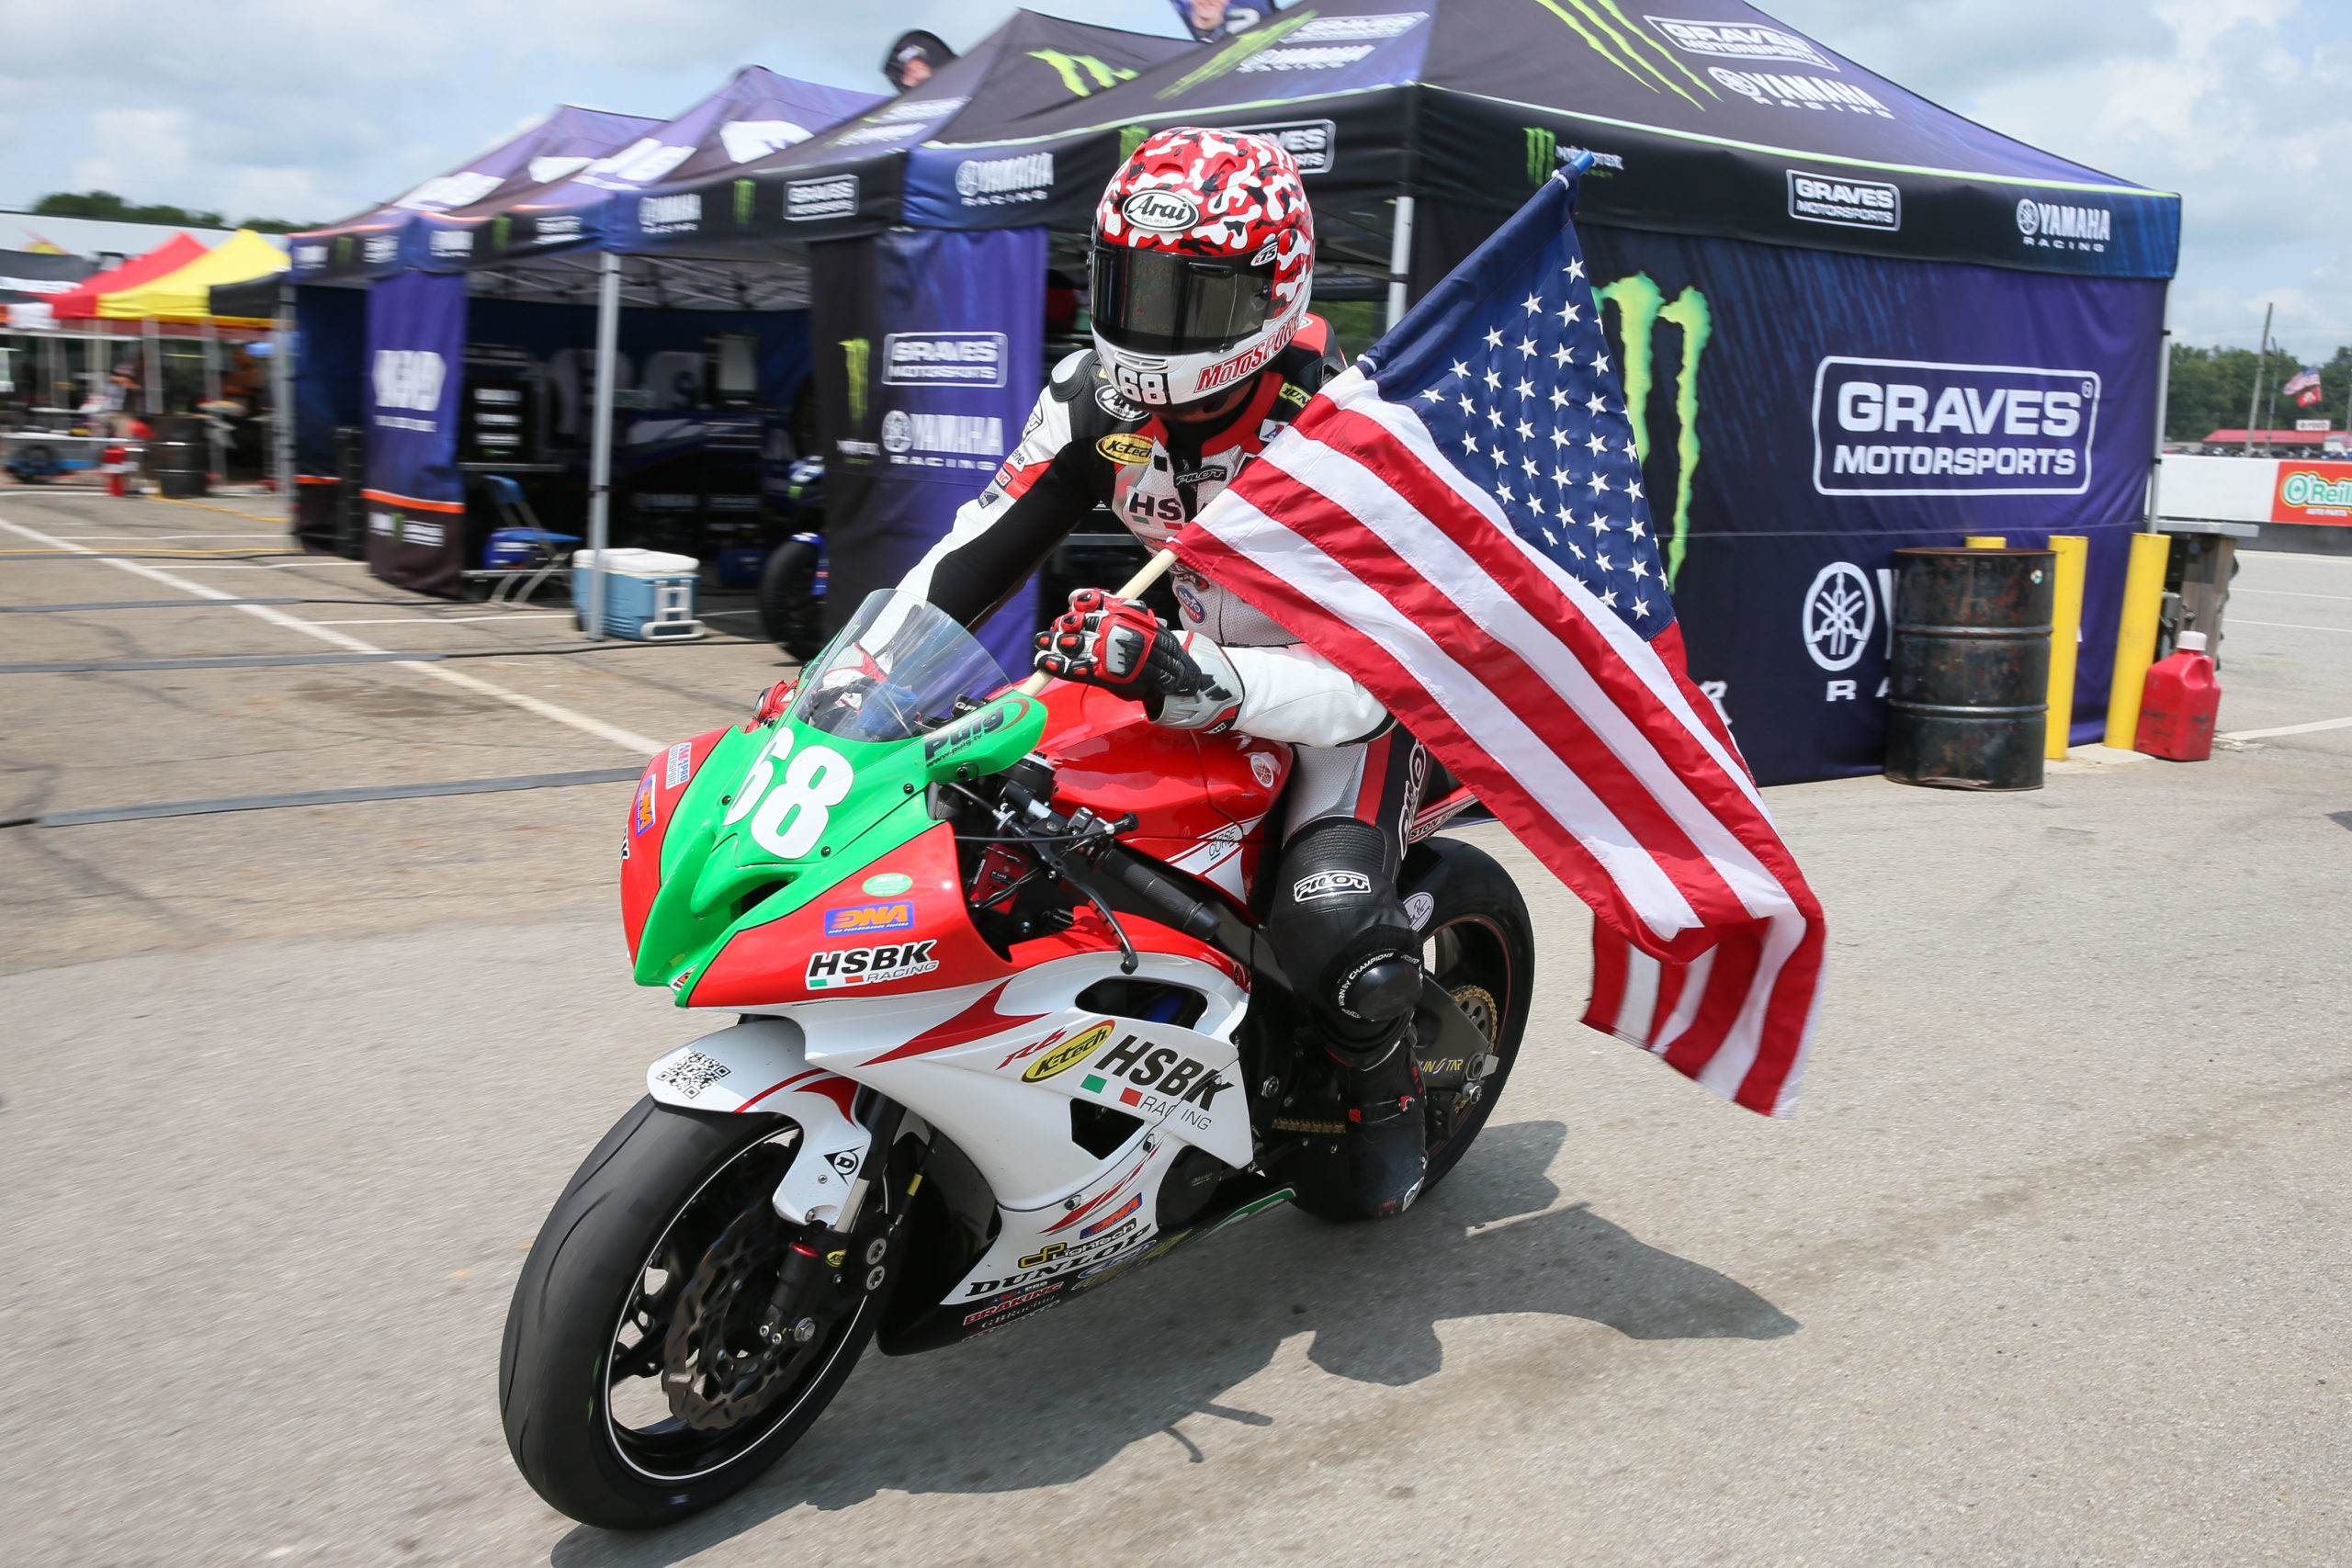 HSBK RACING'S DOMINGUEZ TAKES DOUBLE RACE WINS IN AMA PRO SUPERSPORT AT MID-OHIO